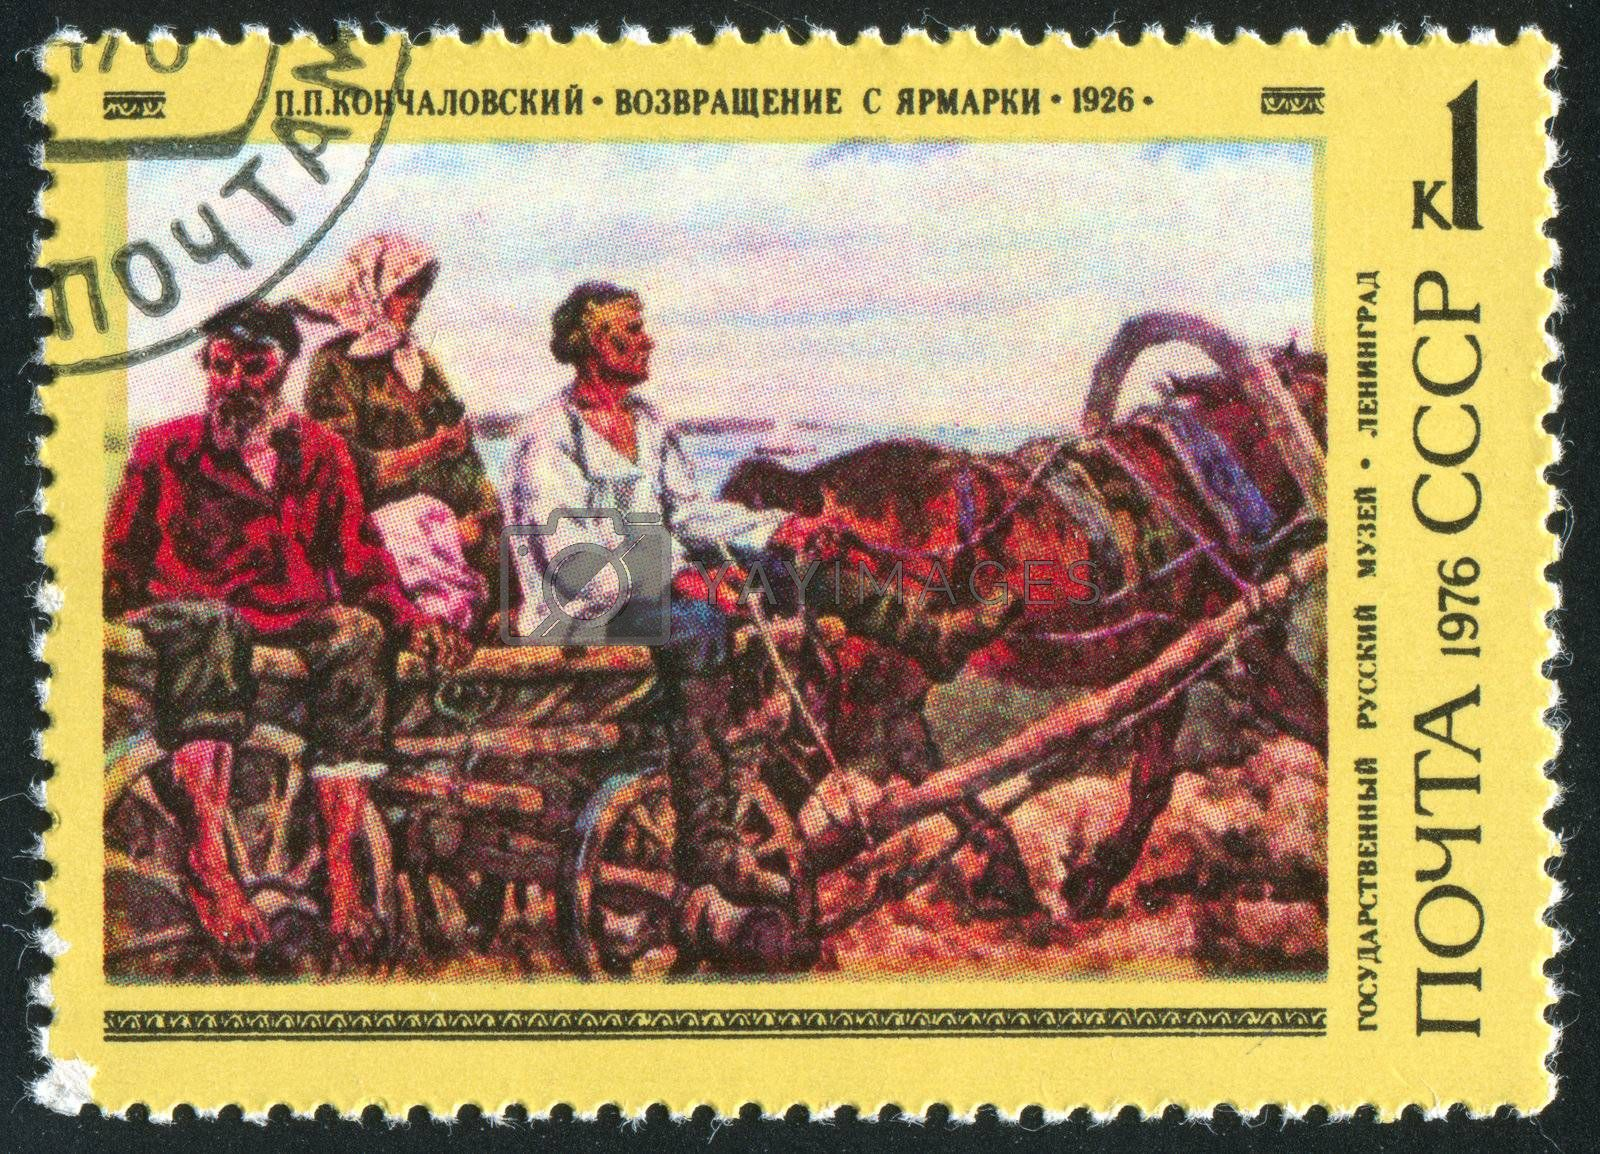 RUSSIA - CIRCA 1976: stamp printed by Russia, shows Back from the Fair, by Konchalovsky, circa 1976